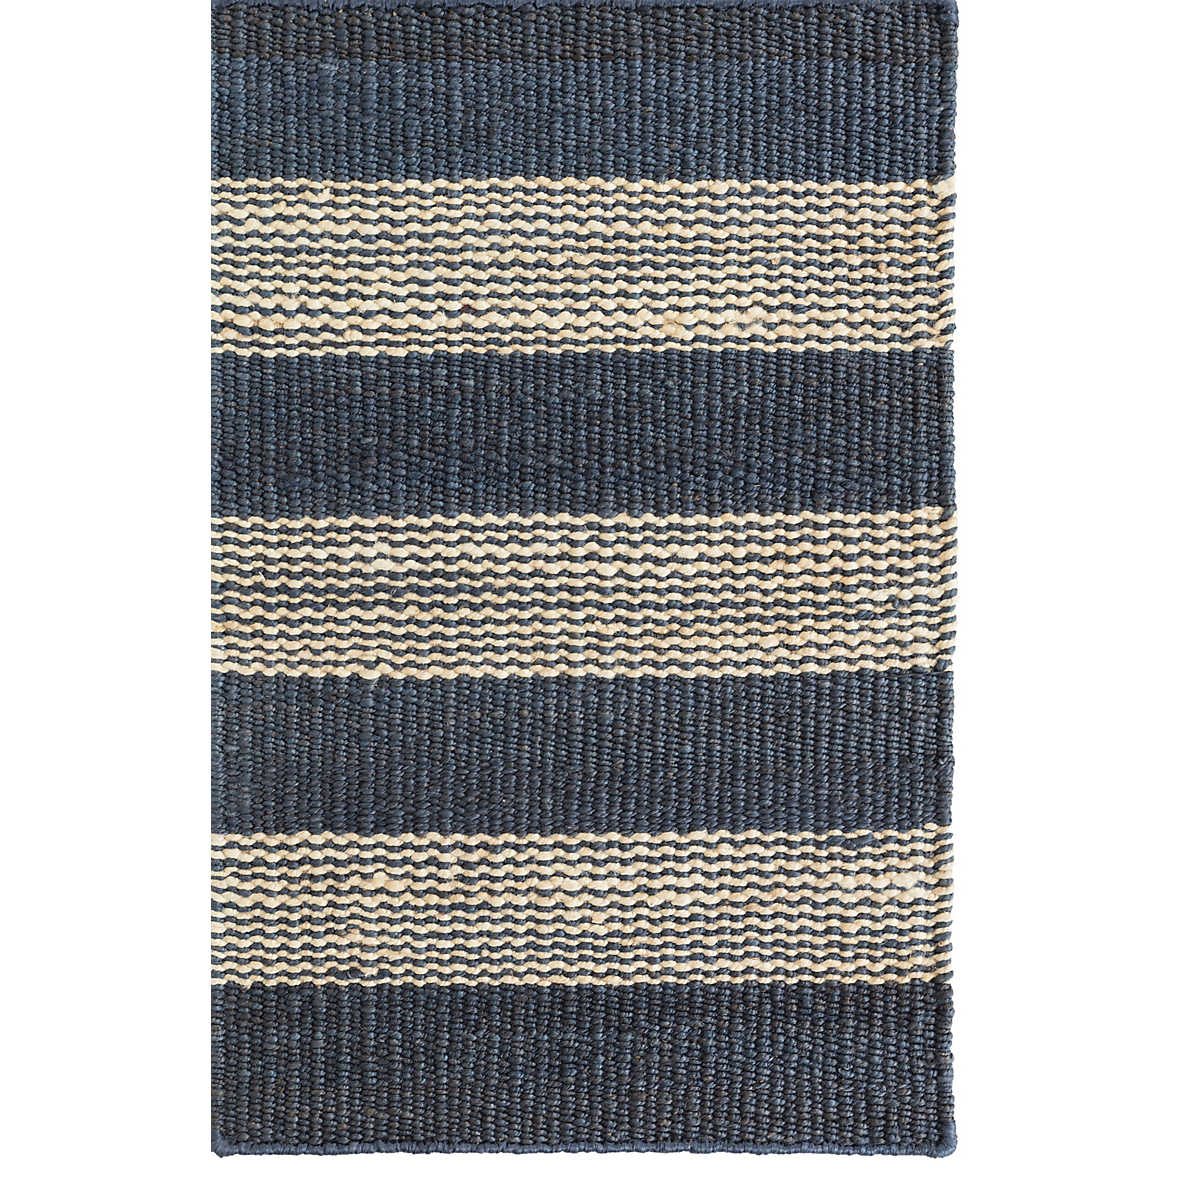 Denim Ticking Woven Jute Rug Dash Amp Albert